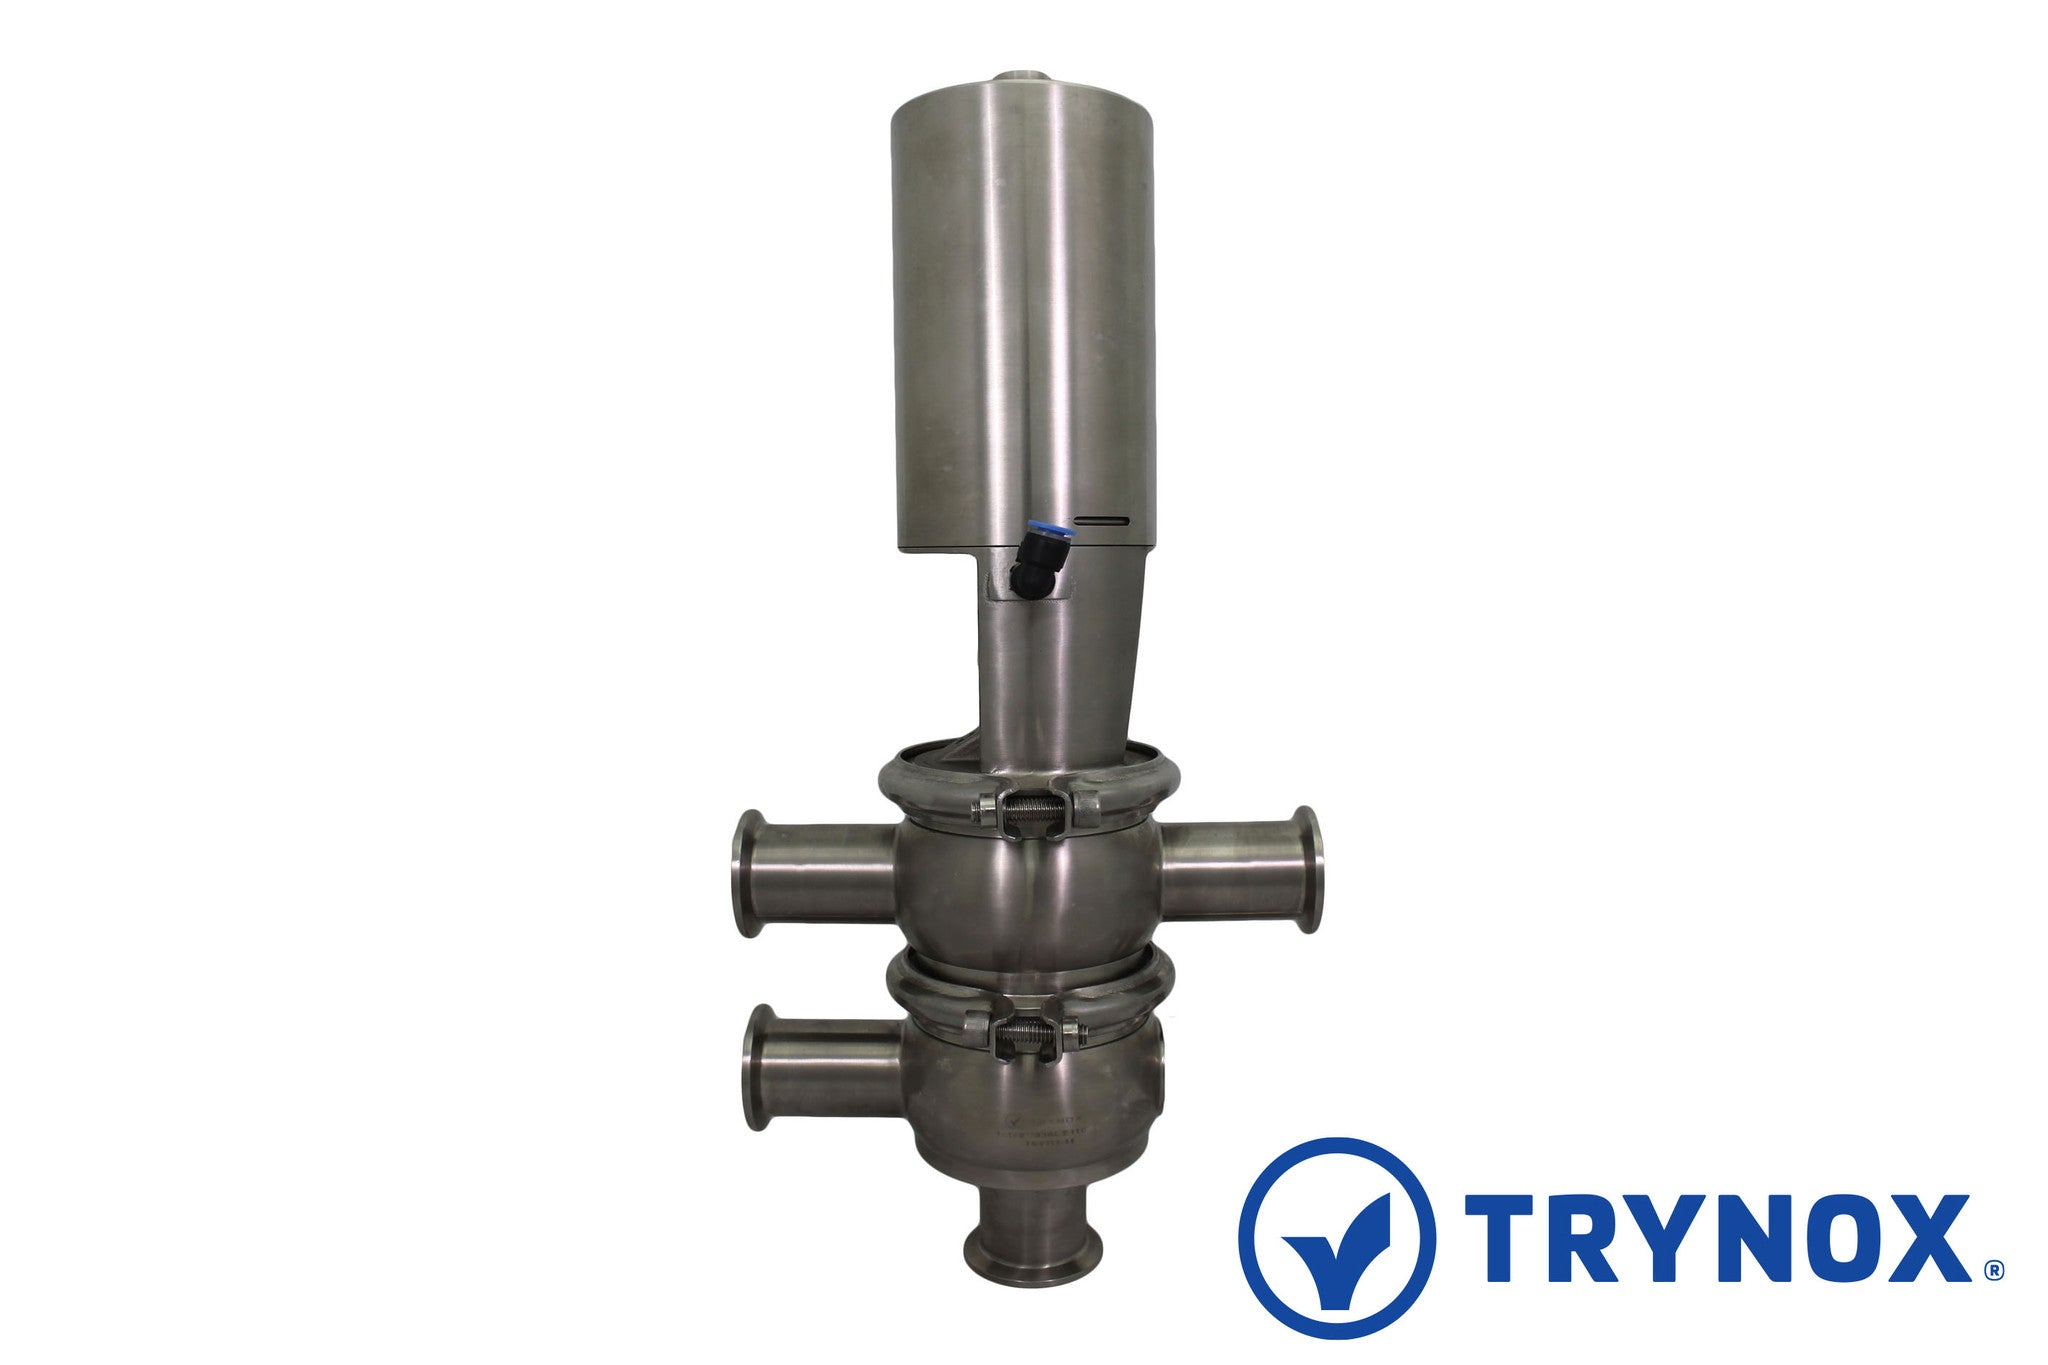 Trynox Clamp Sanitary Stainless Steel Butterfly Valve EPDM Seal 316L 1 Tri clamp Sanitary Fitting